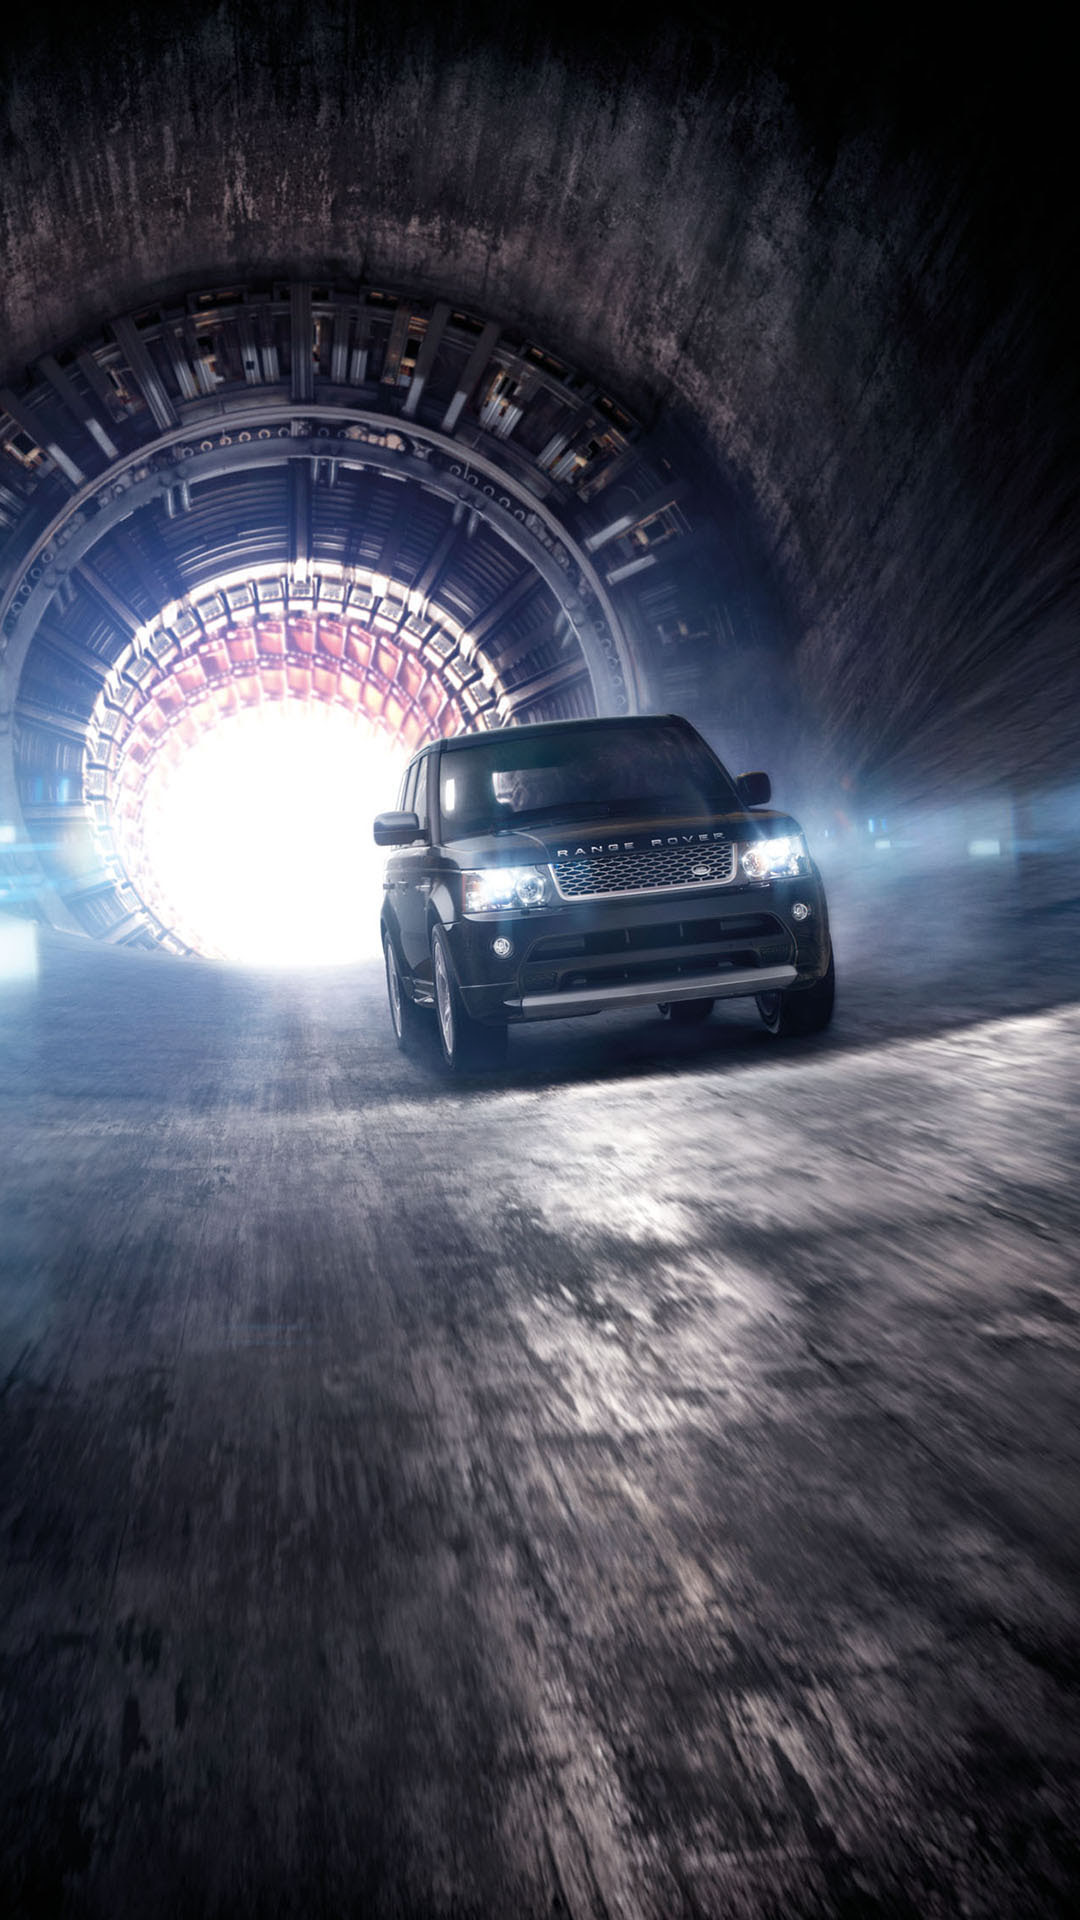 Range Rover Sport Best Htc One Wallpapers Free And Easy To Download